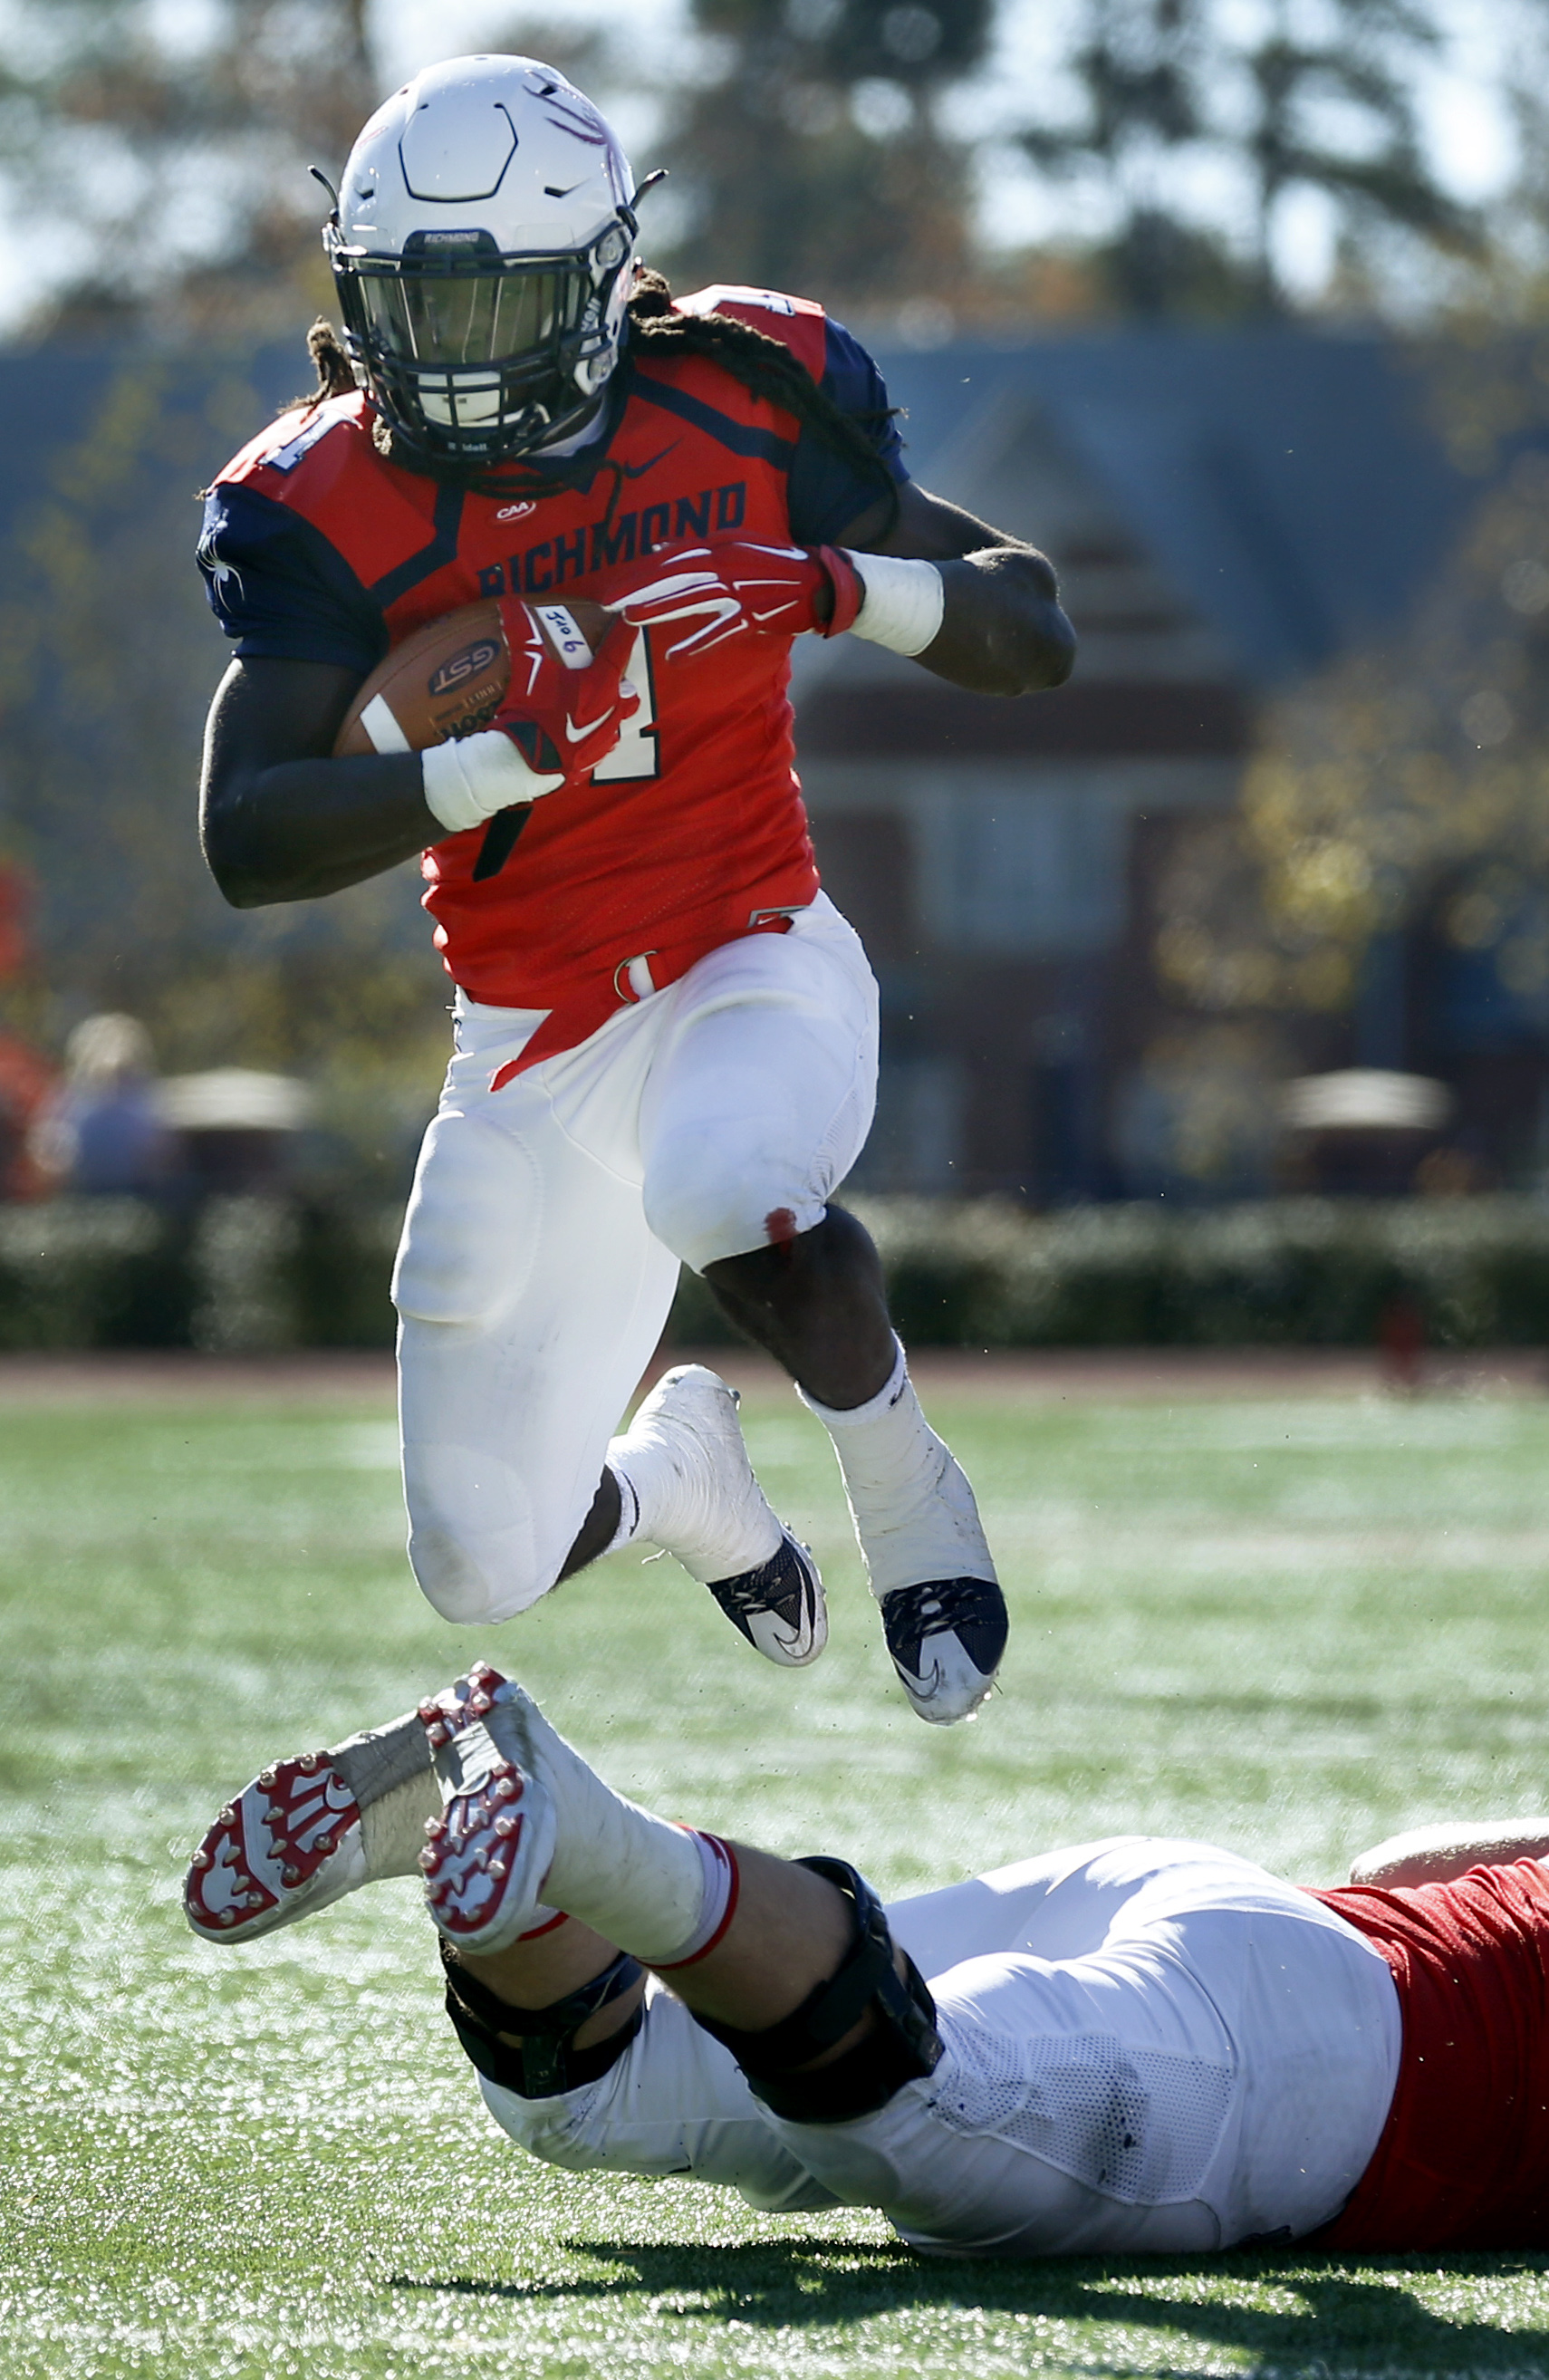 Richmond's Jacobi Green leaps over his offensive lineman during the second quarter of an NCAA college football game agaisnt William & Mary,  Saturday, Nov. 21, 2015 in Richmond, Va. (Dean Hoffmeyer/Richmond Times-Dispatch via AP) MANDATORY CREDIT